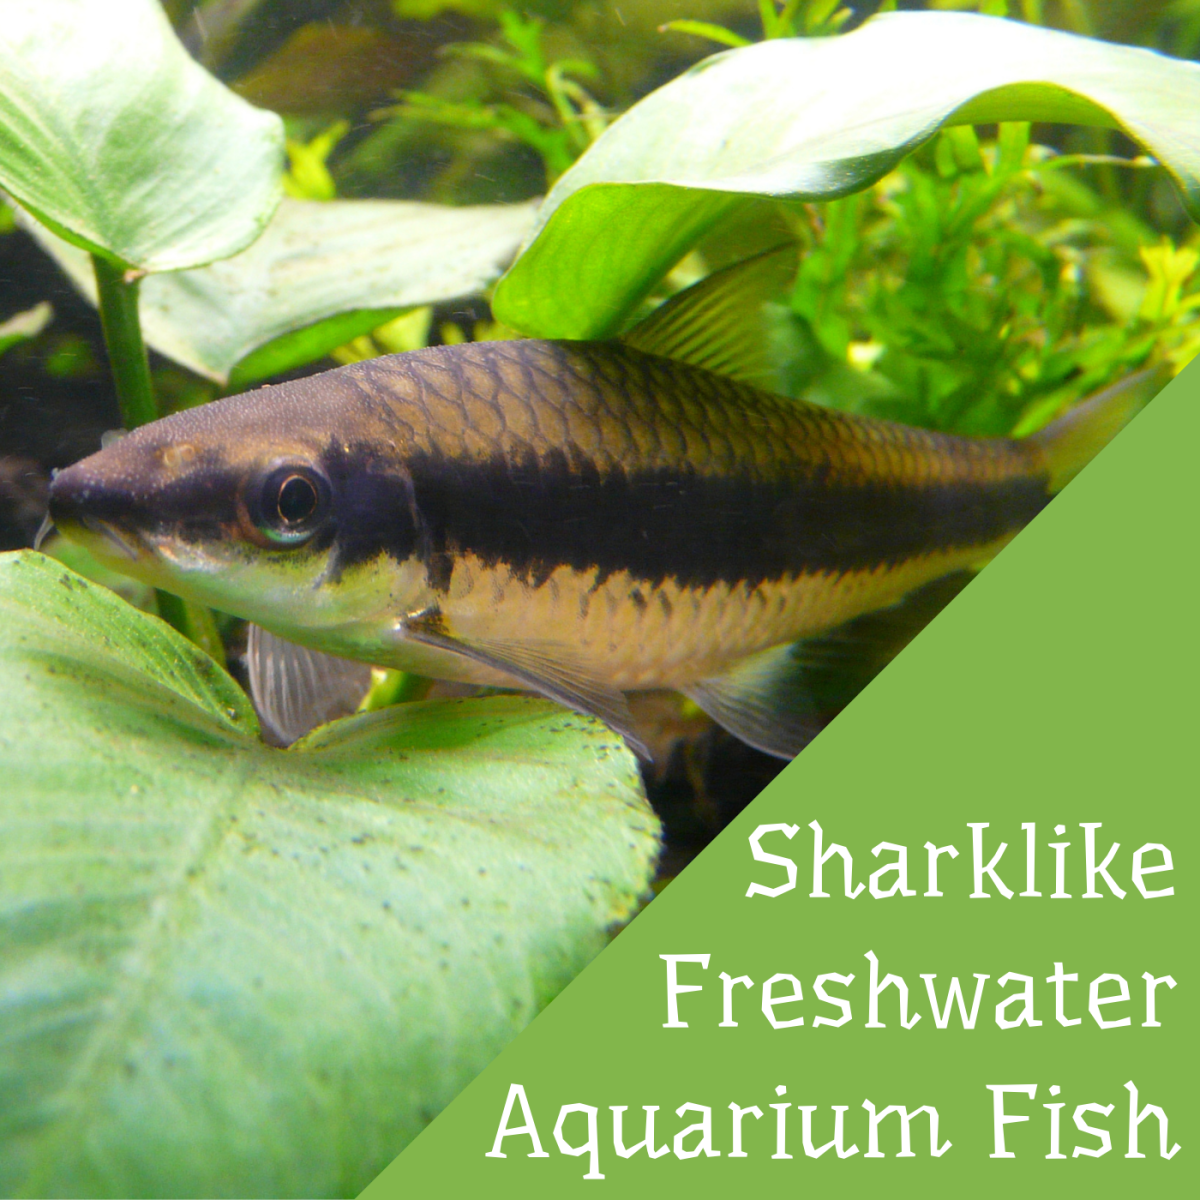 The Siamese algae eater is just one example of a sharklike fish you can keep in a freshwater home aquarium.